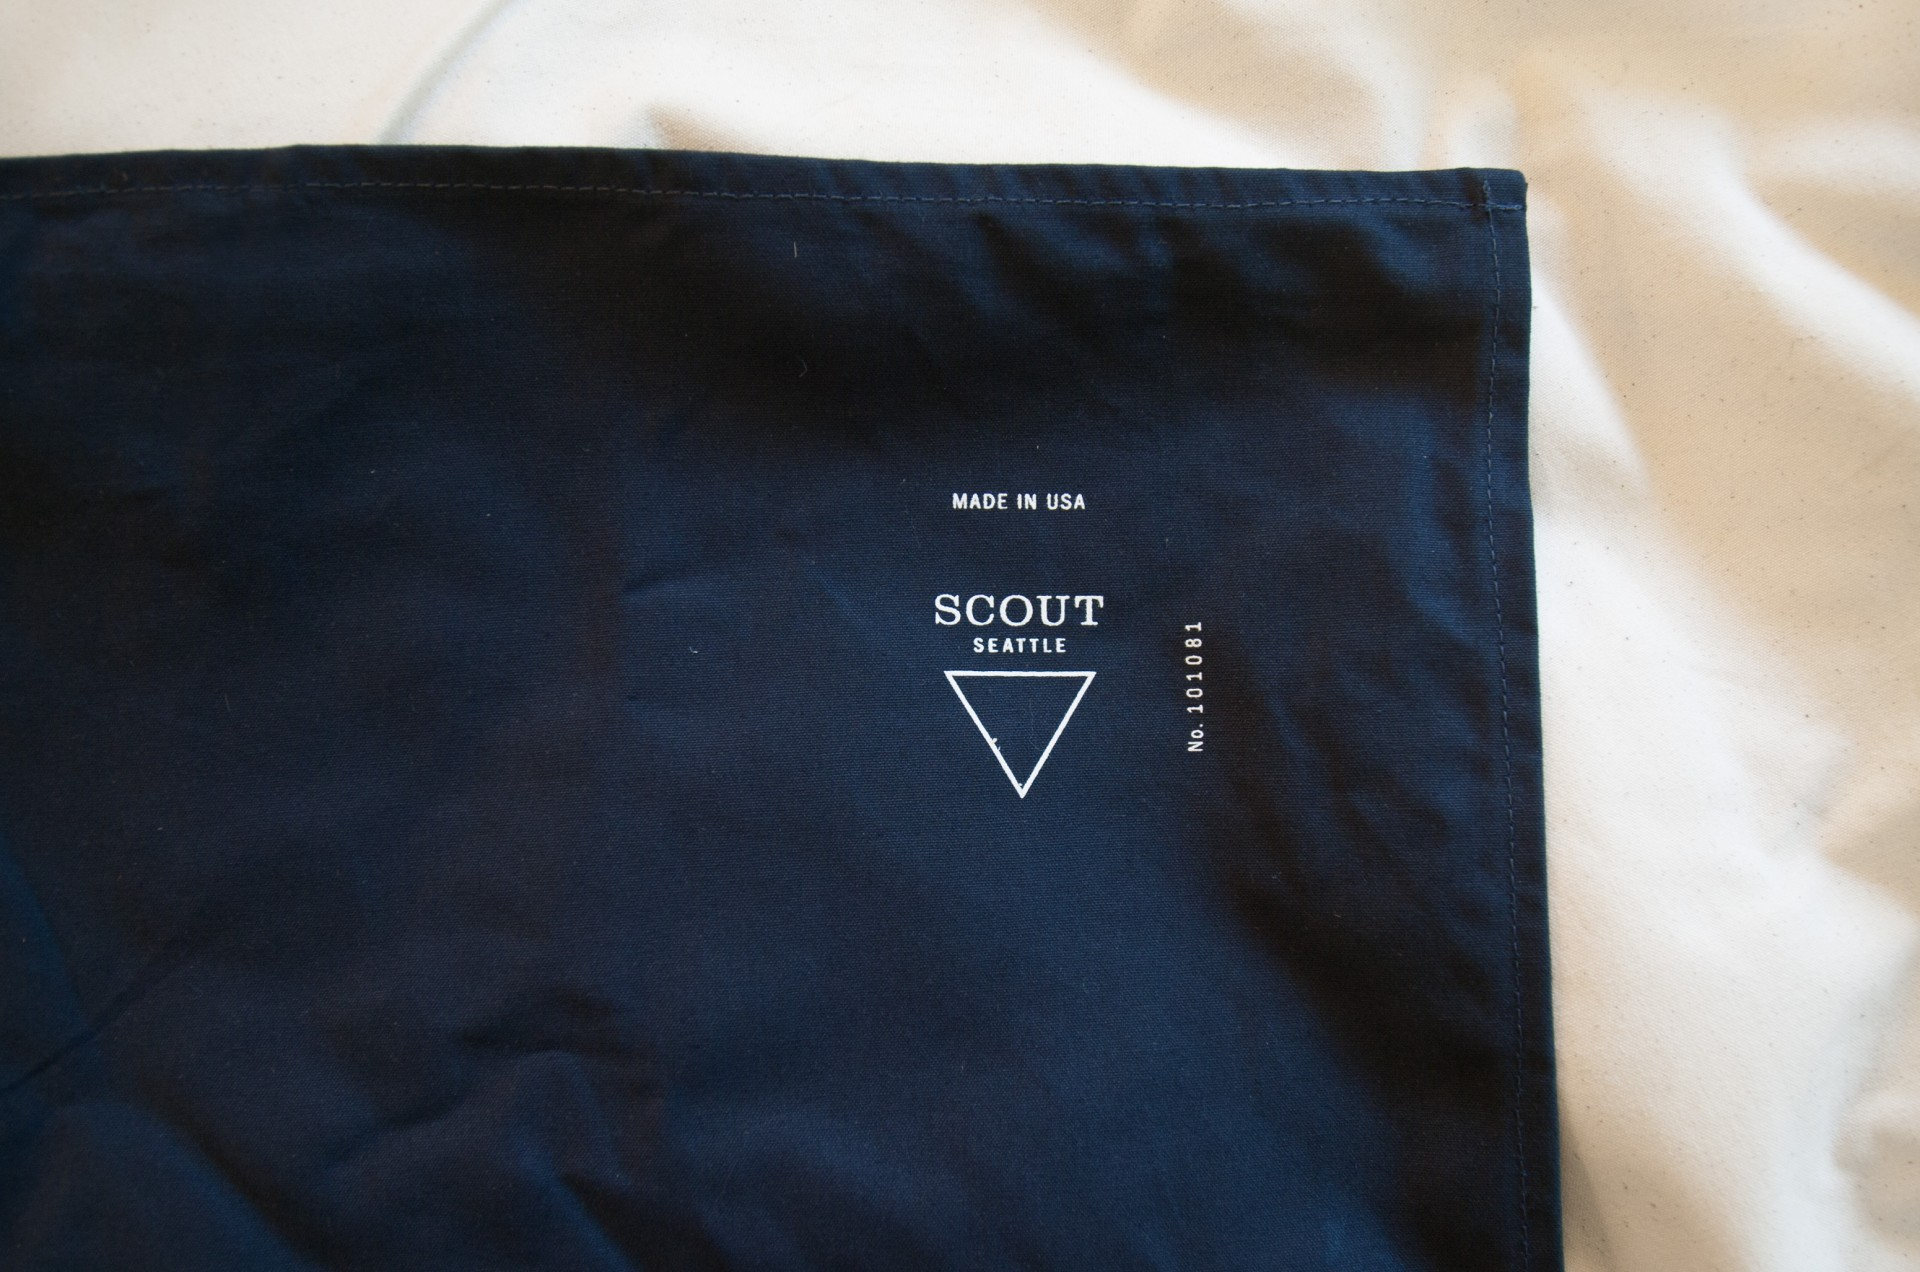 Studio Birdsall - Identity - Scout Seattle including logo, product labels and packaging.